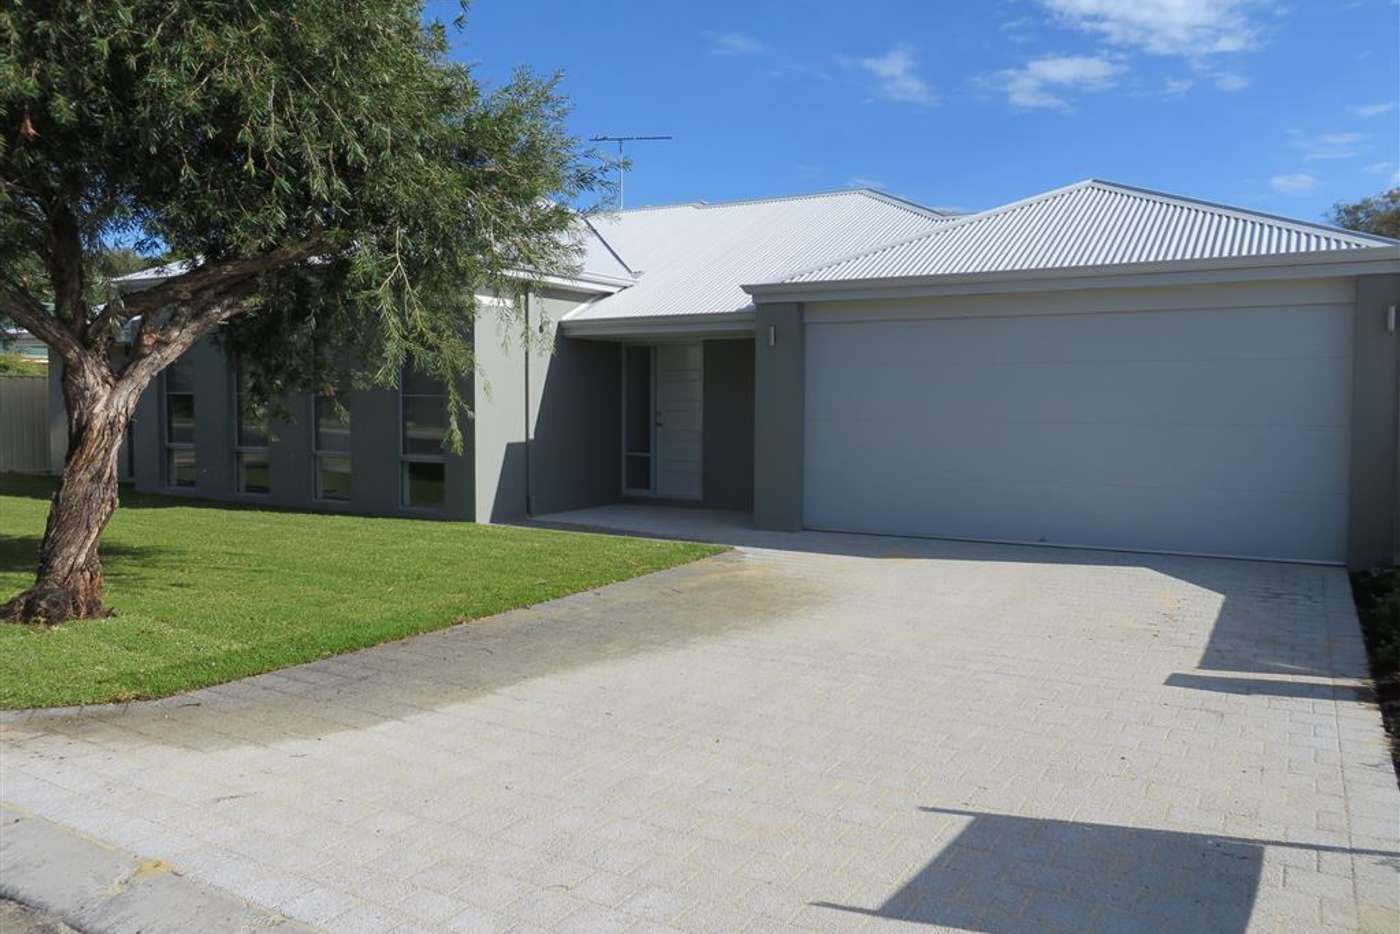 Main view of Homely house listing, 1/61 Dorset Street, Busselton WA 6280